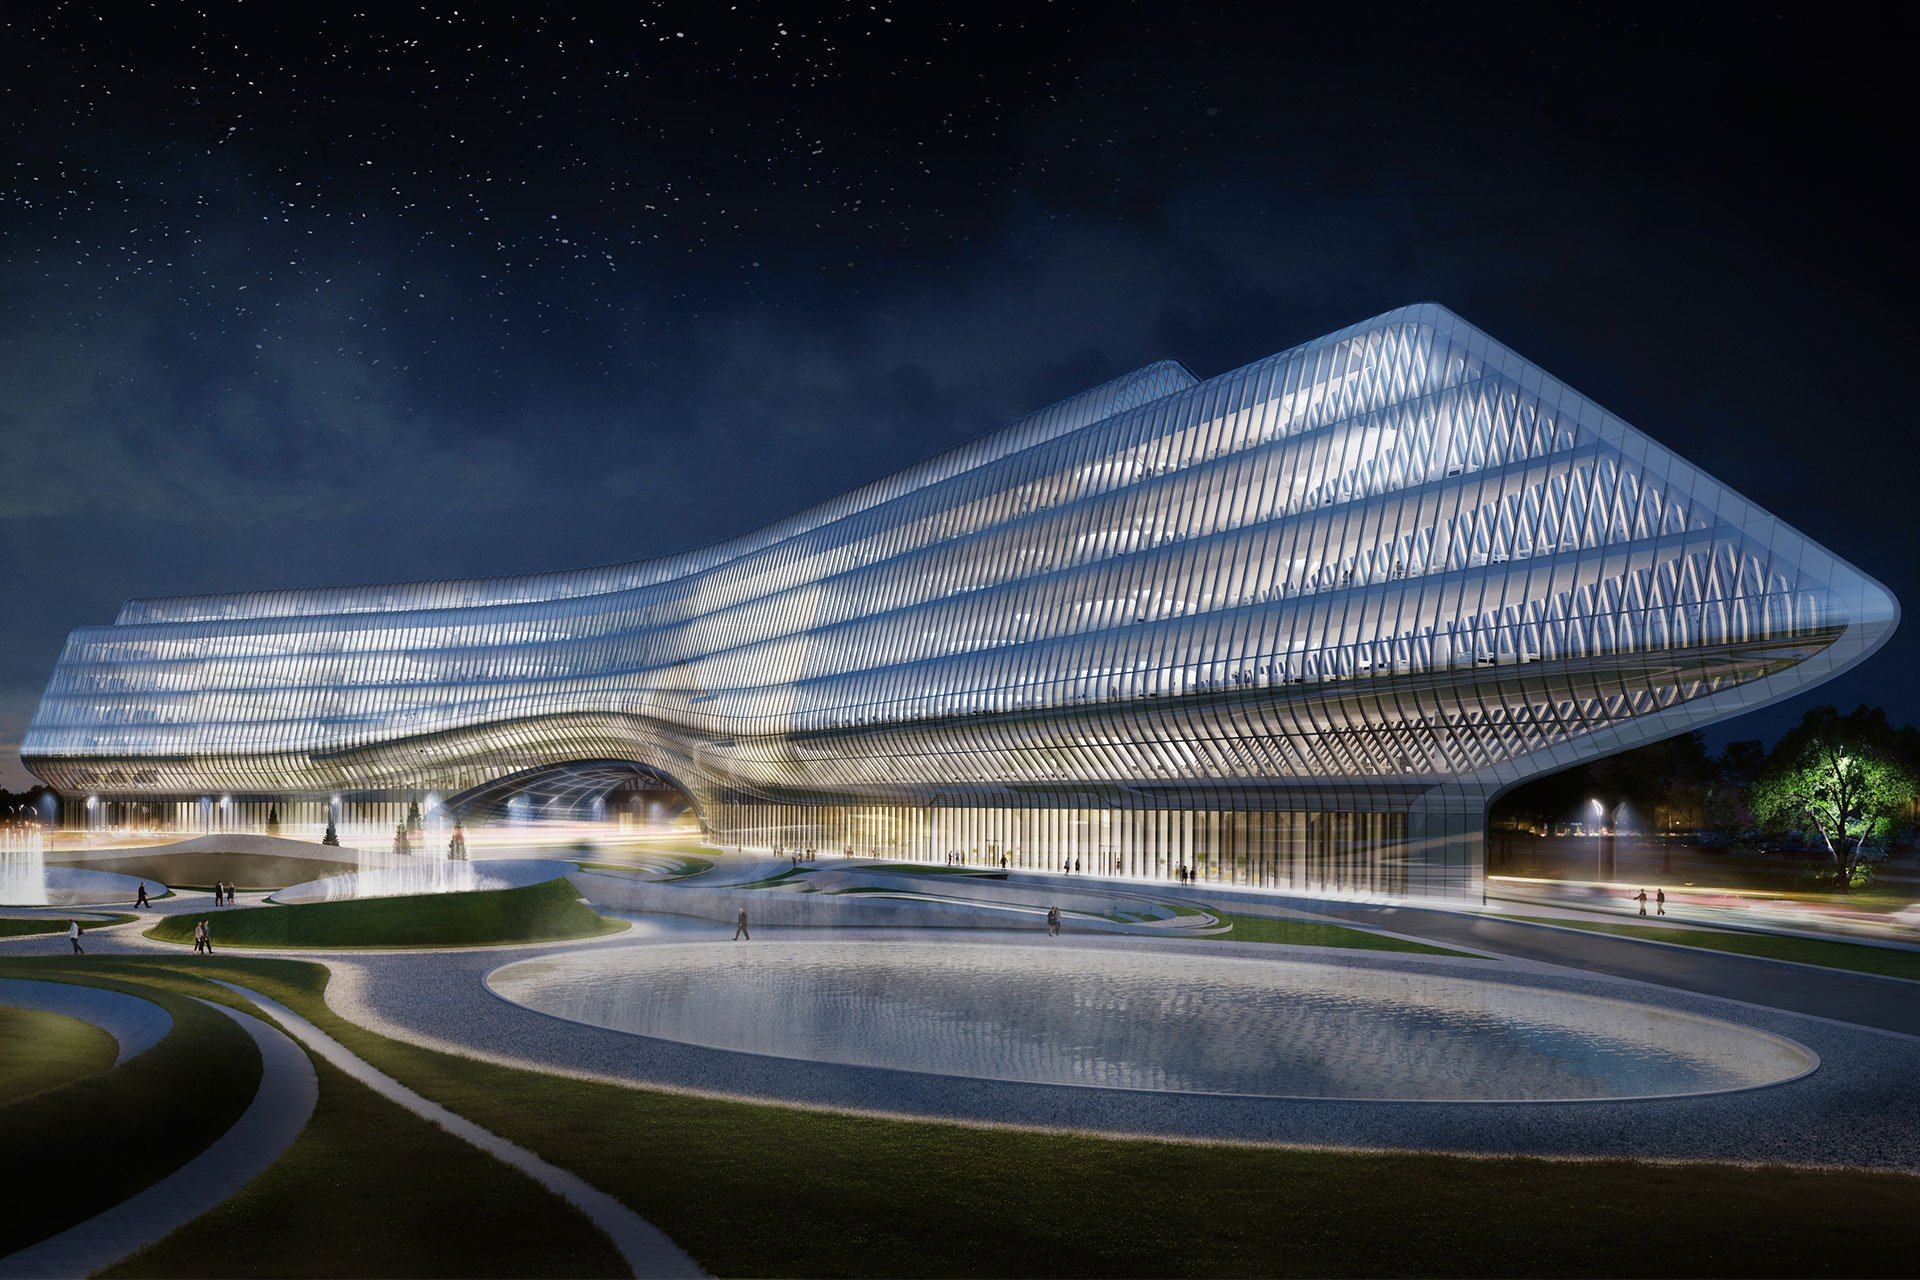 Sberbank Technopark building exterior architectural lighting design OVI Chinese